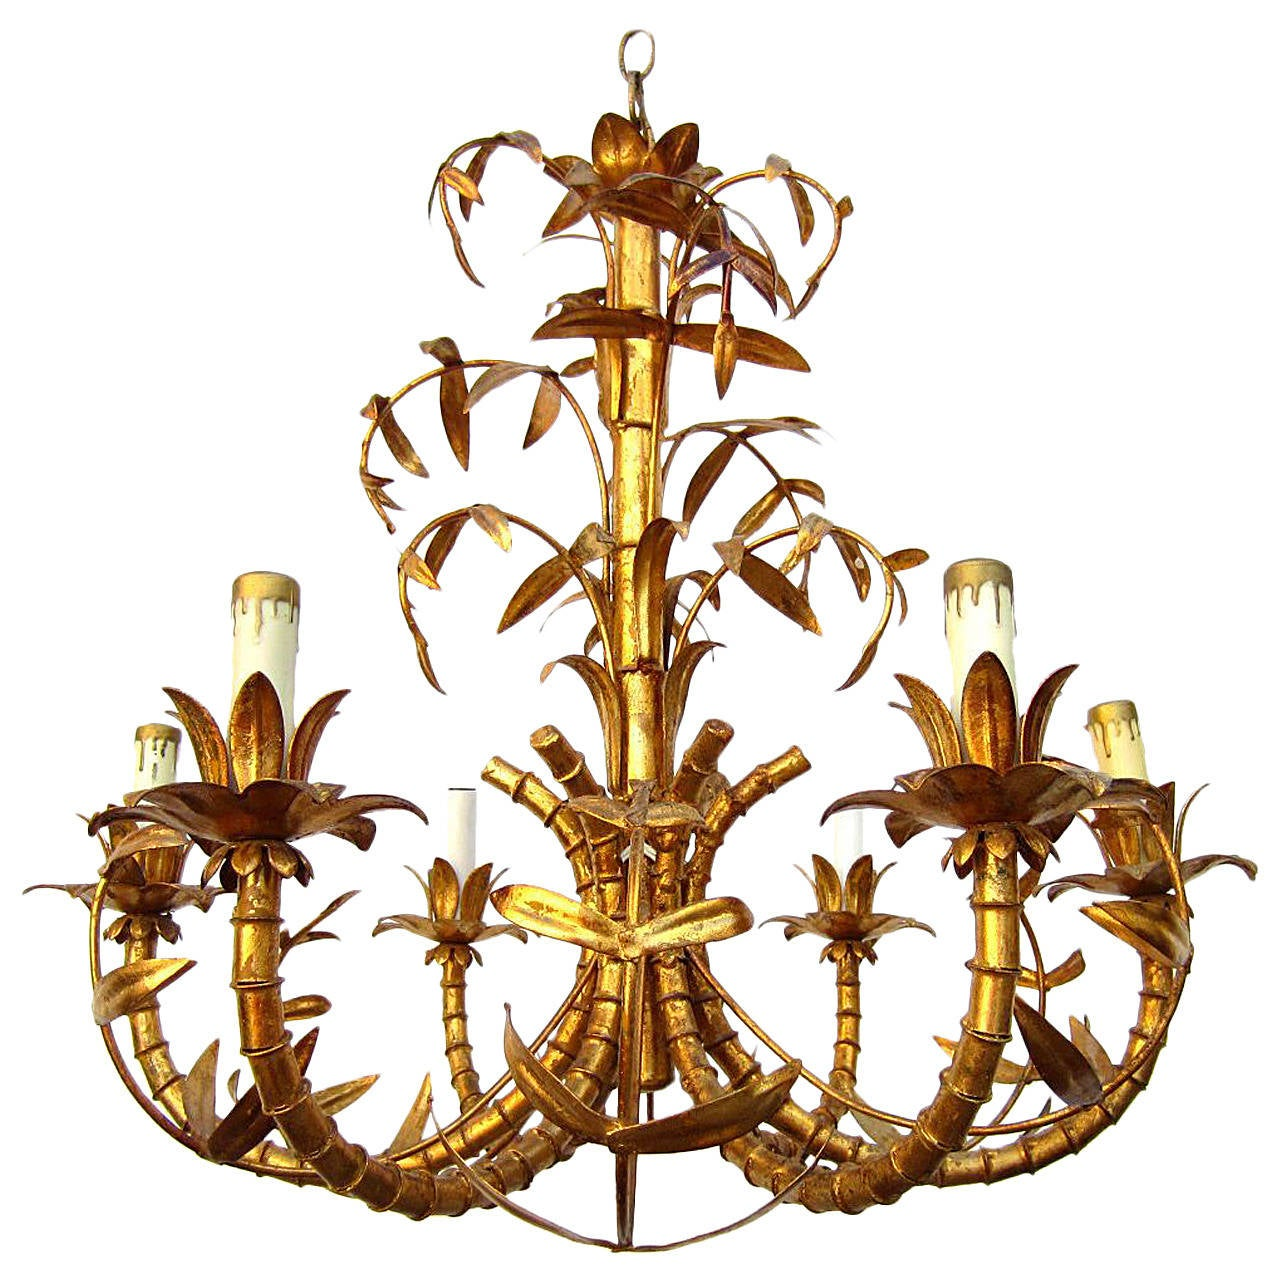 Hollywood regency gold gilded faux bamboo chandelier tole italy hollywood regency gold gilded faux bamboo chandelier tole italy 1950s 1 arubaitofo Gallery